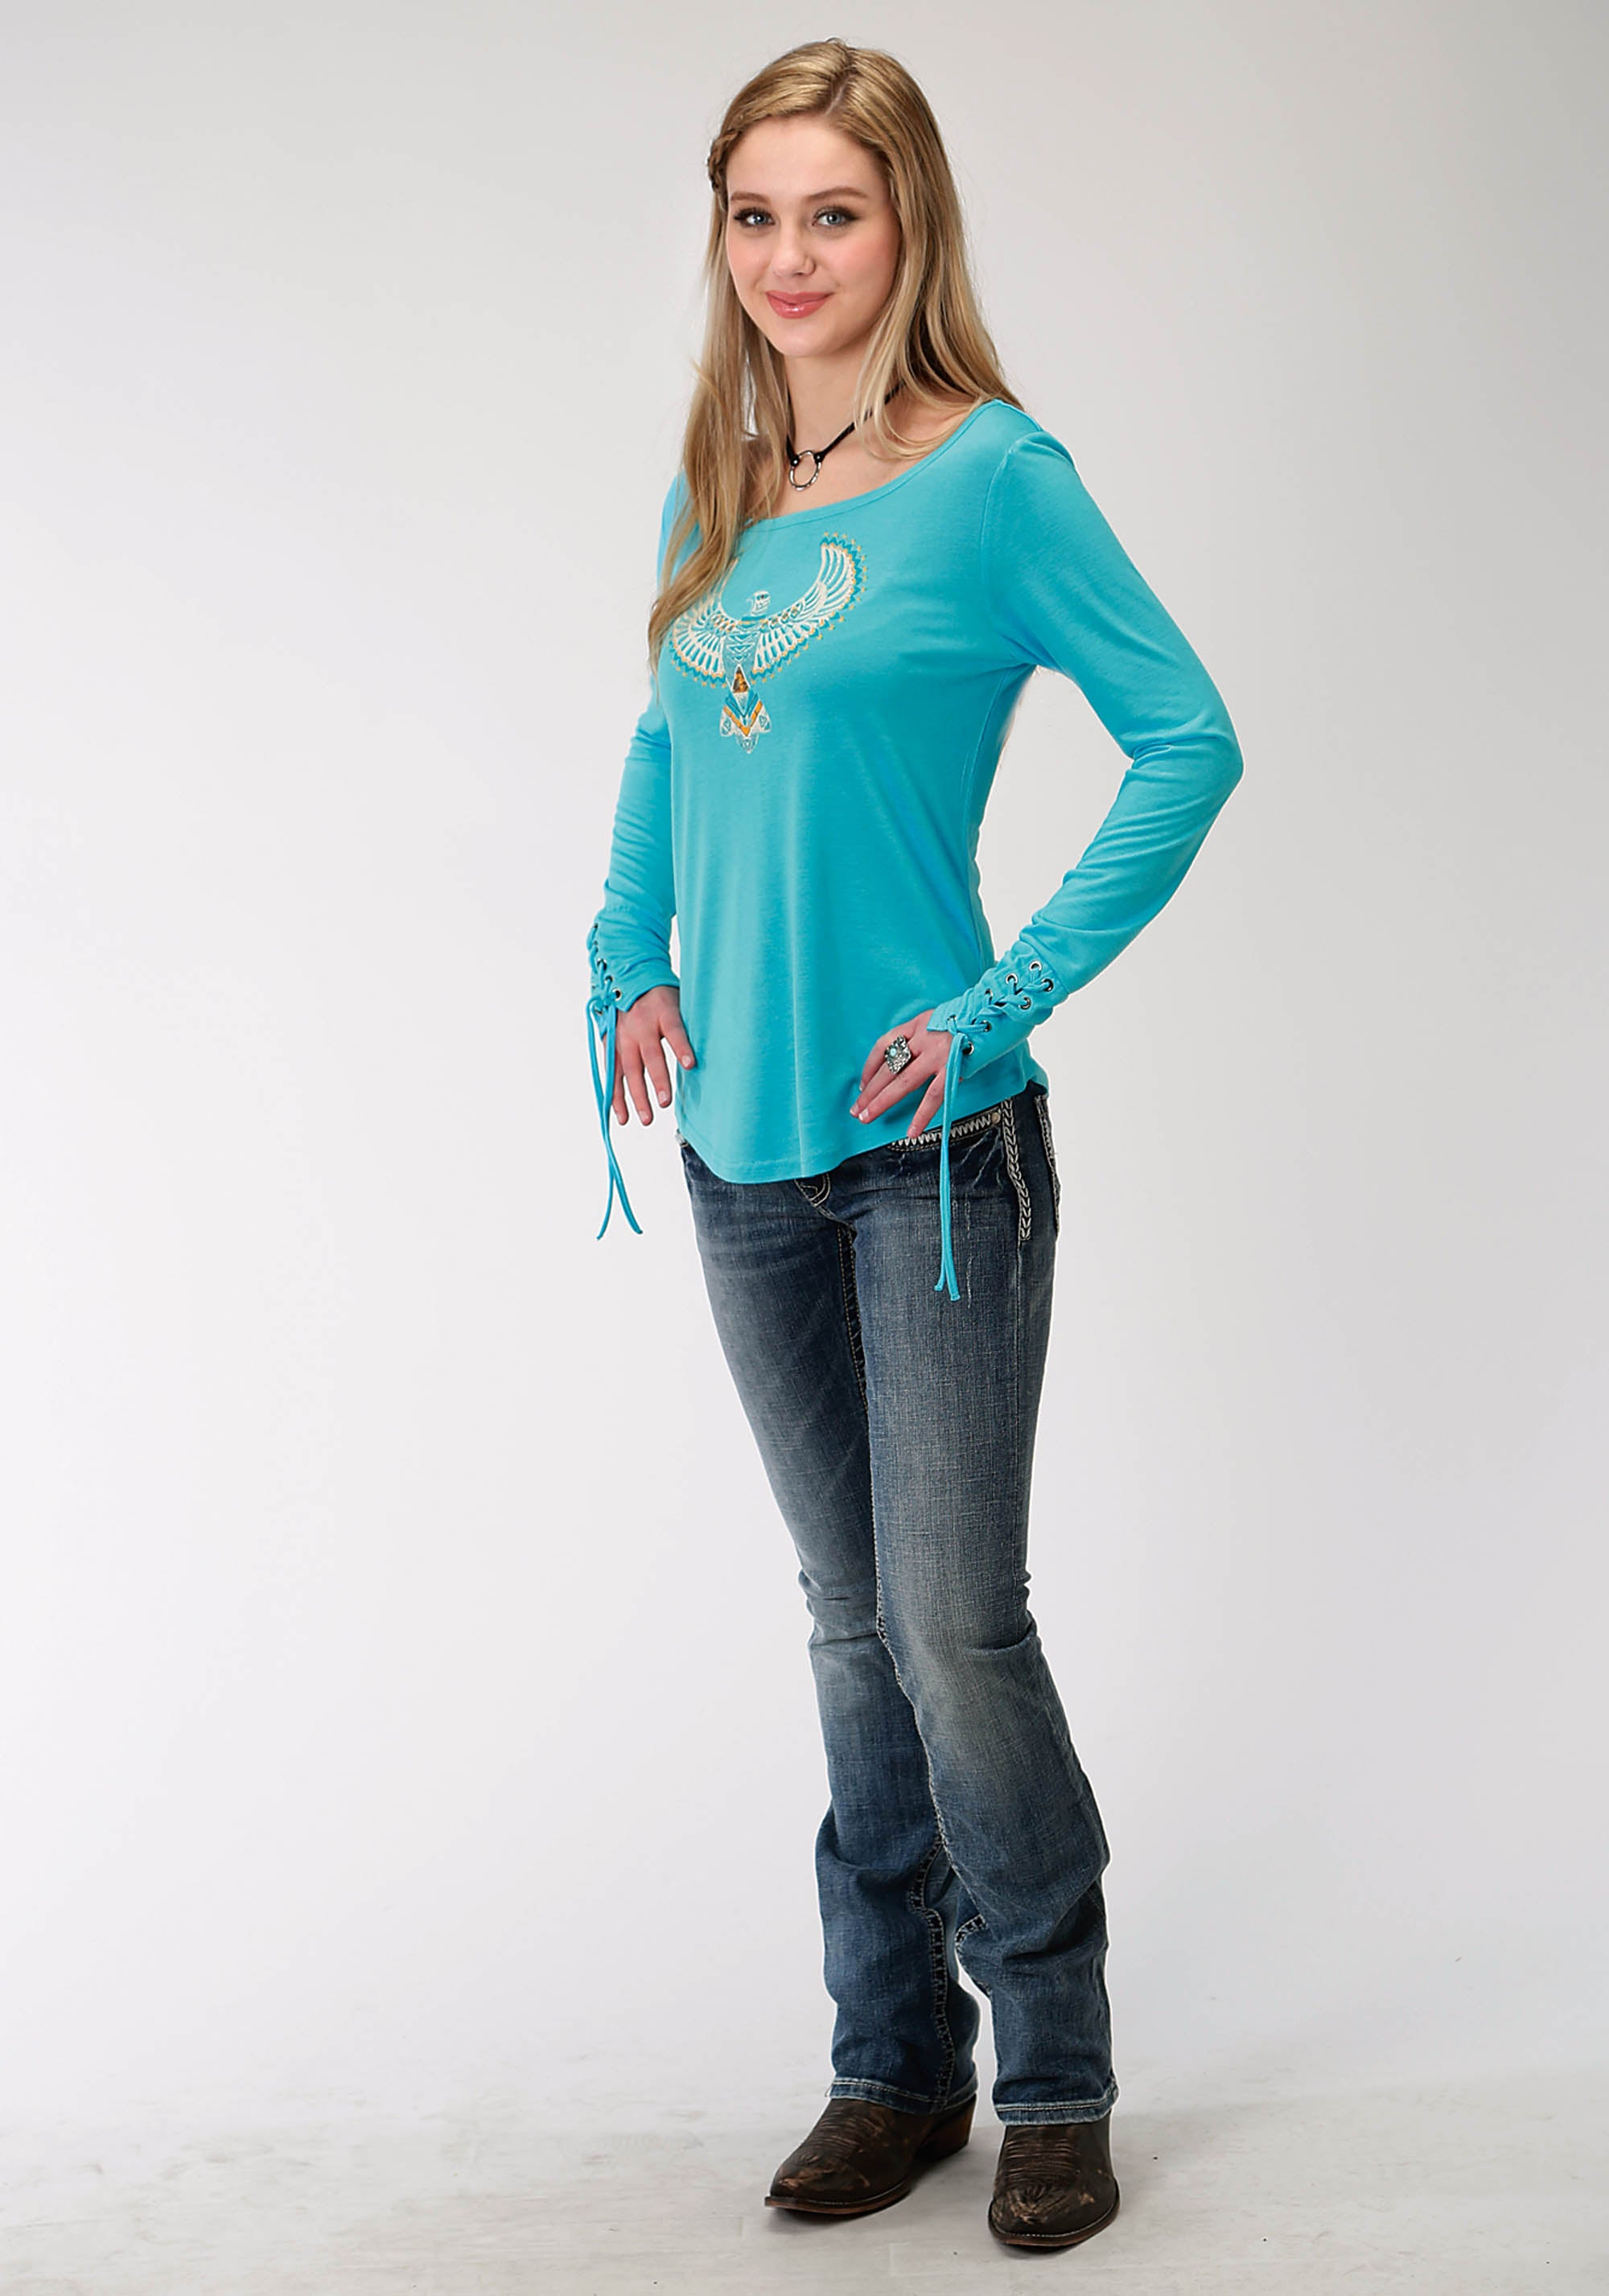 ROPER WOMENS BLUE 0490 P/R LADIES LS CREW NECK TEE FIVE STAR COLLECTION- FALL II LONG SLEEVE